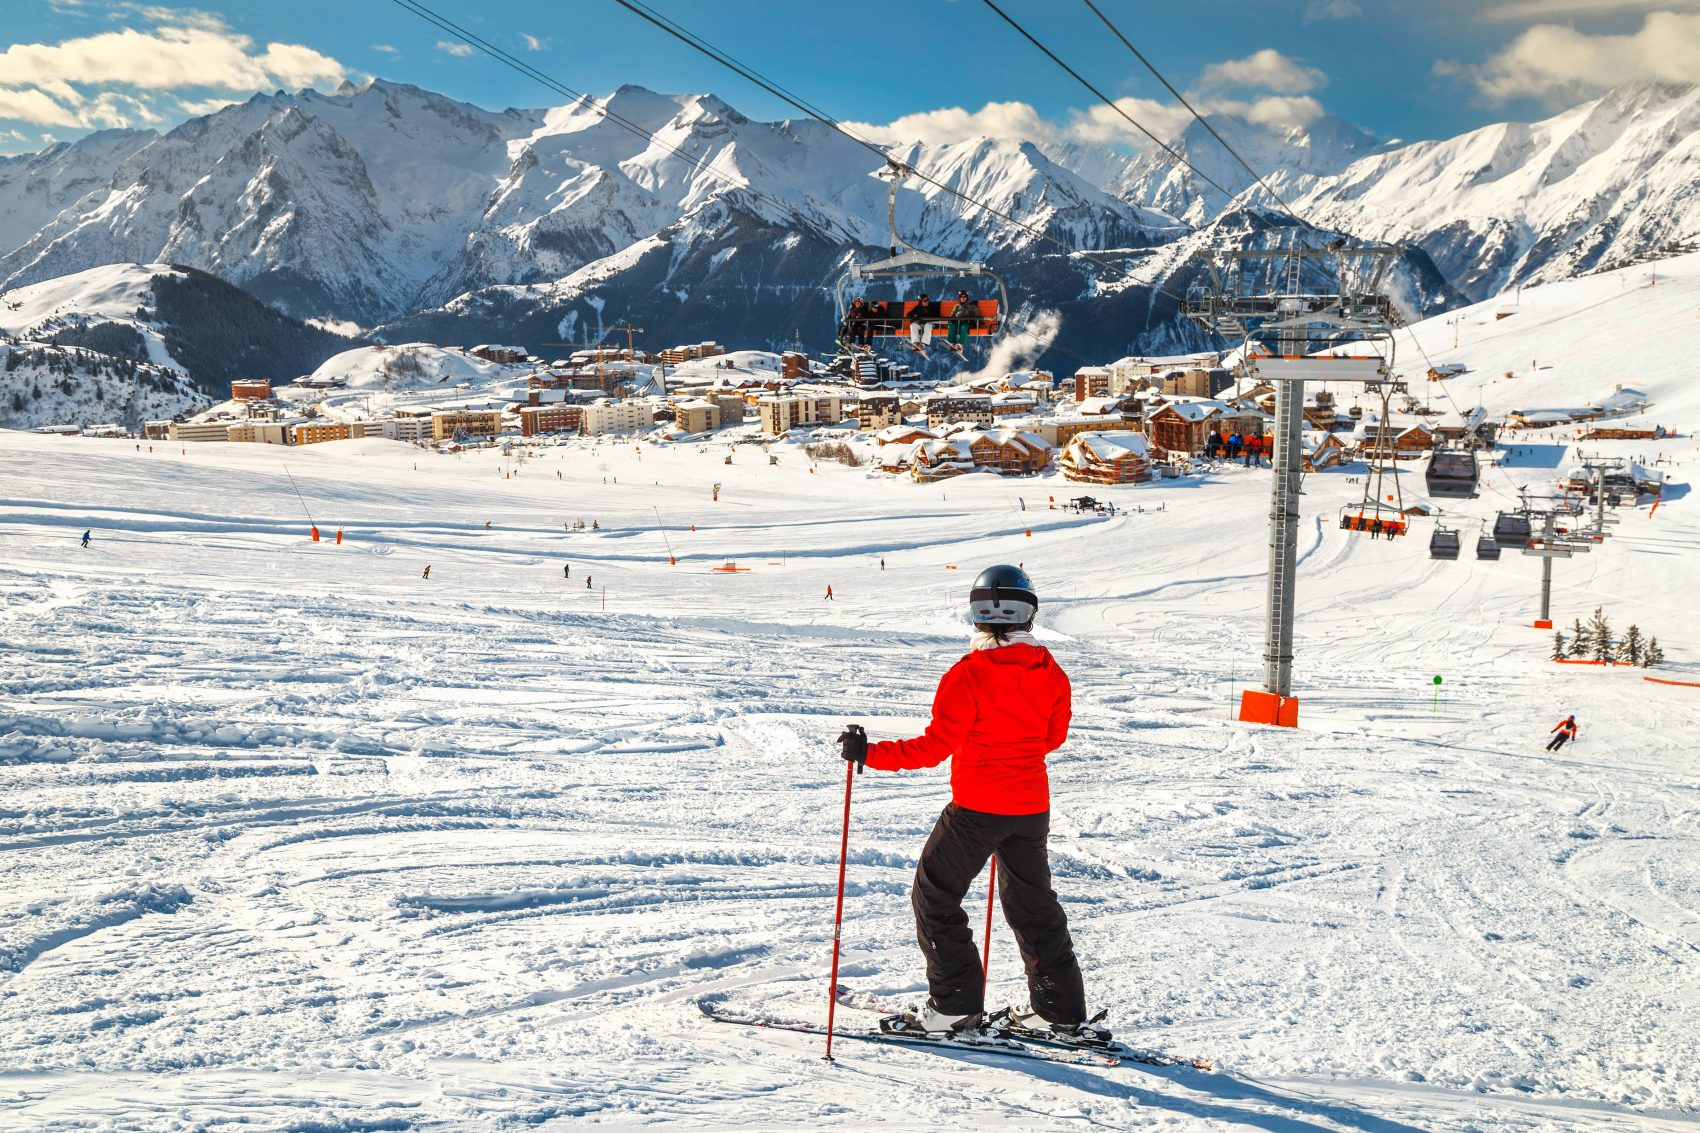 Wonderful famous ski resort with skiers in high mountains, Alpe d Huez, France